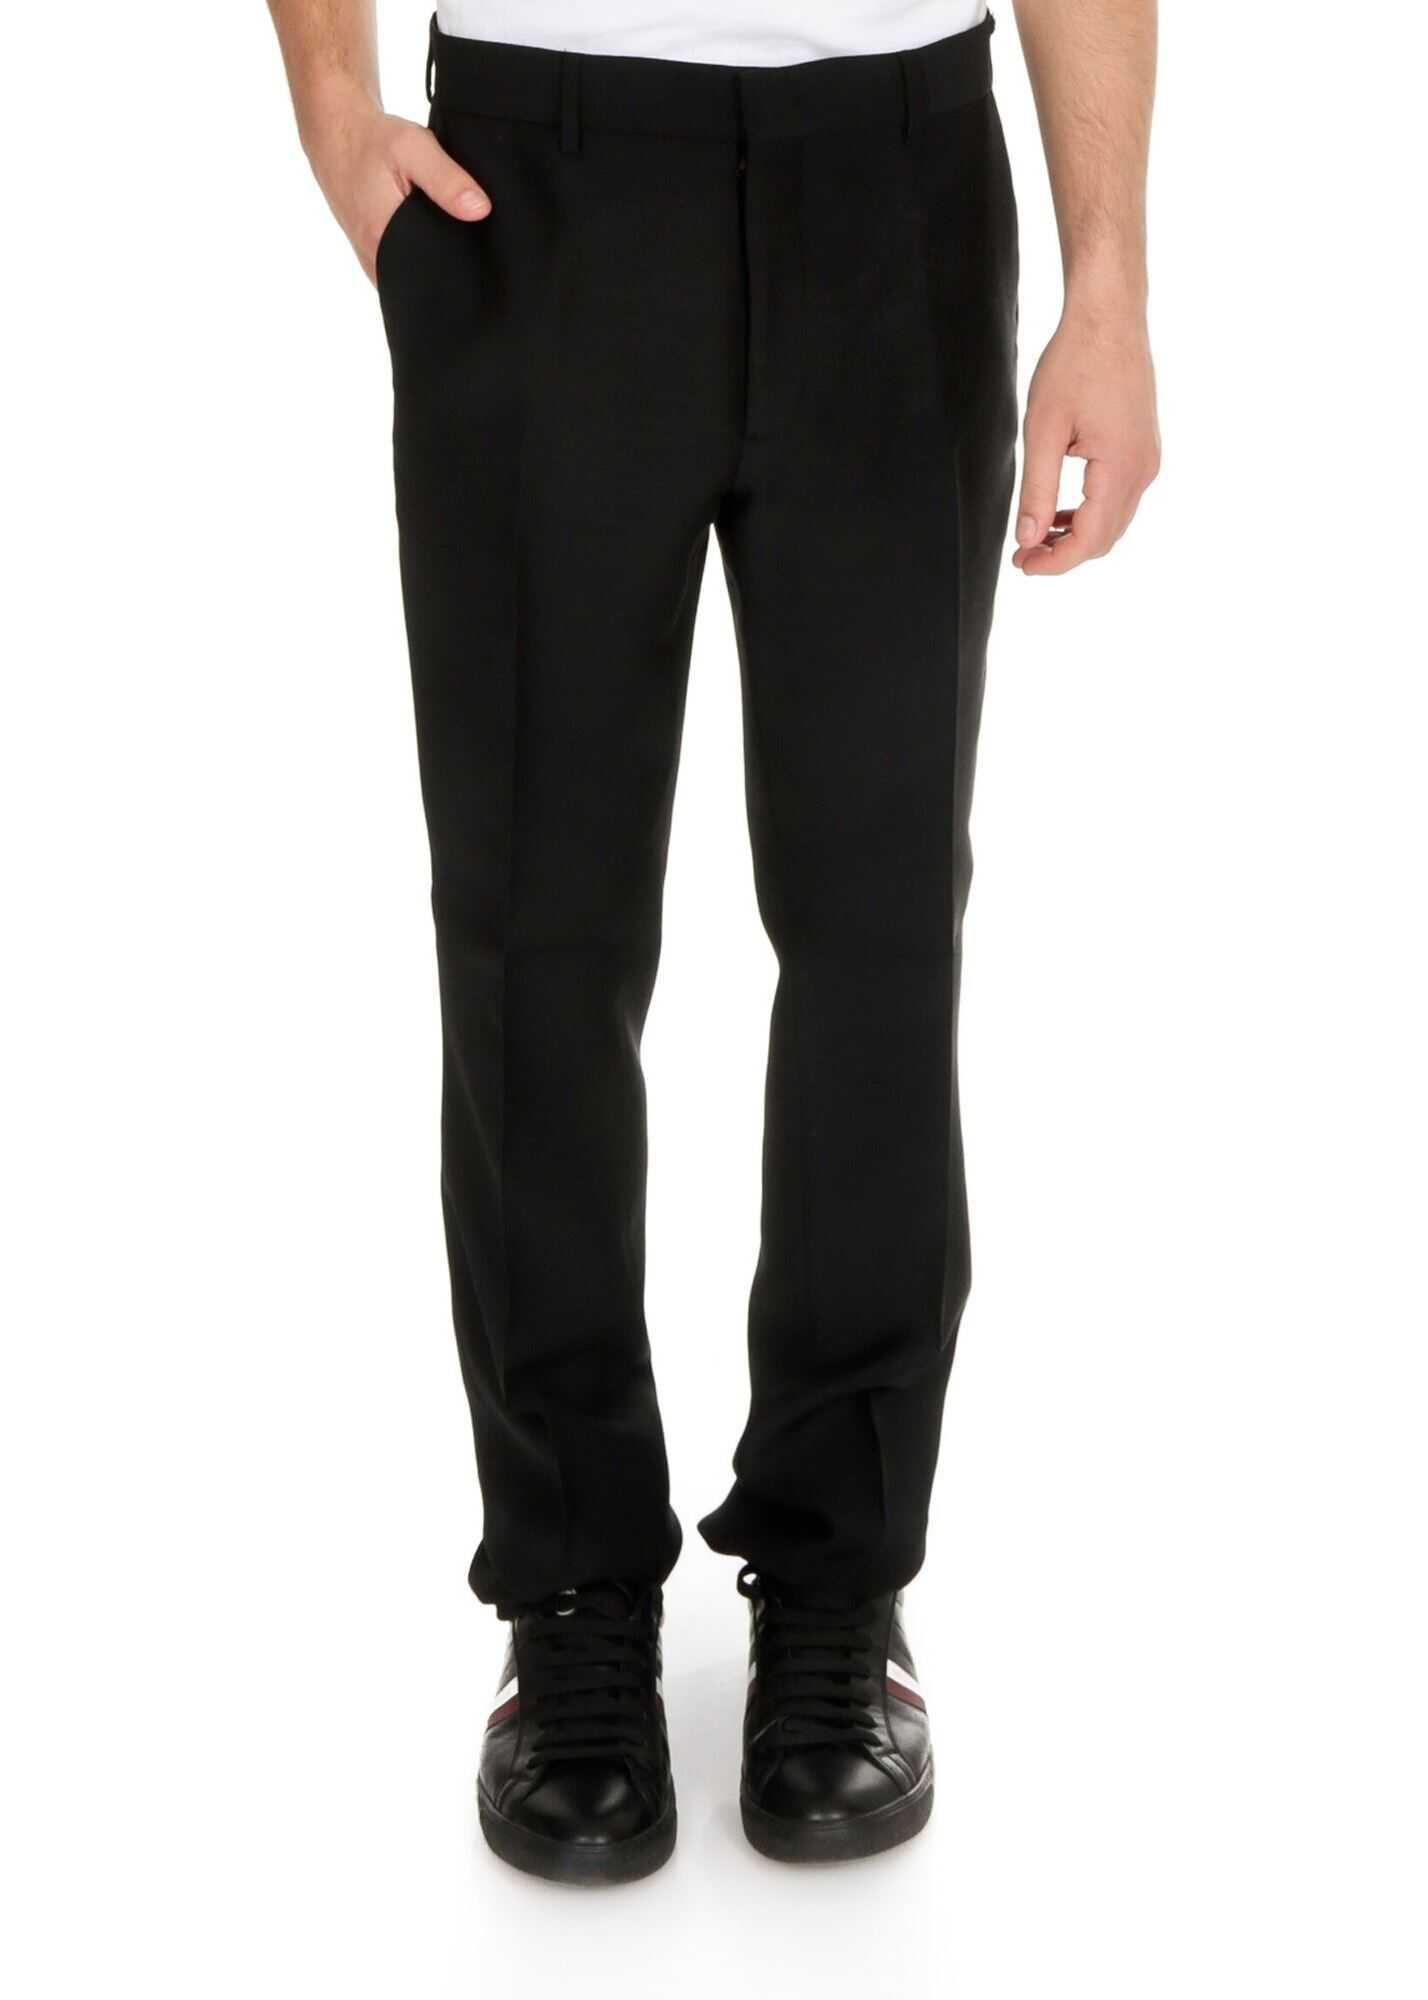 Fendi Suit Pants In Black With Faded Ff Detail Black imagine